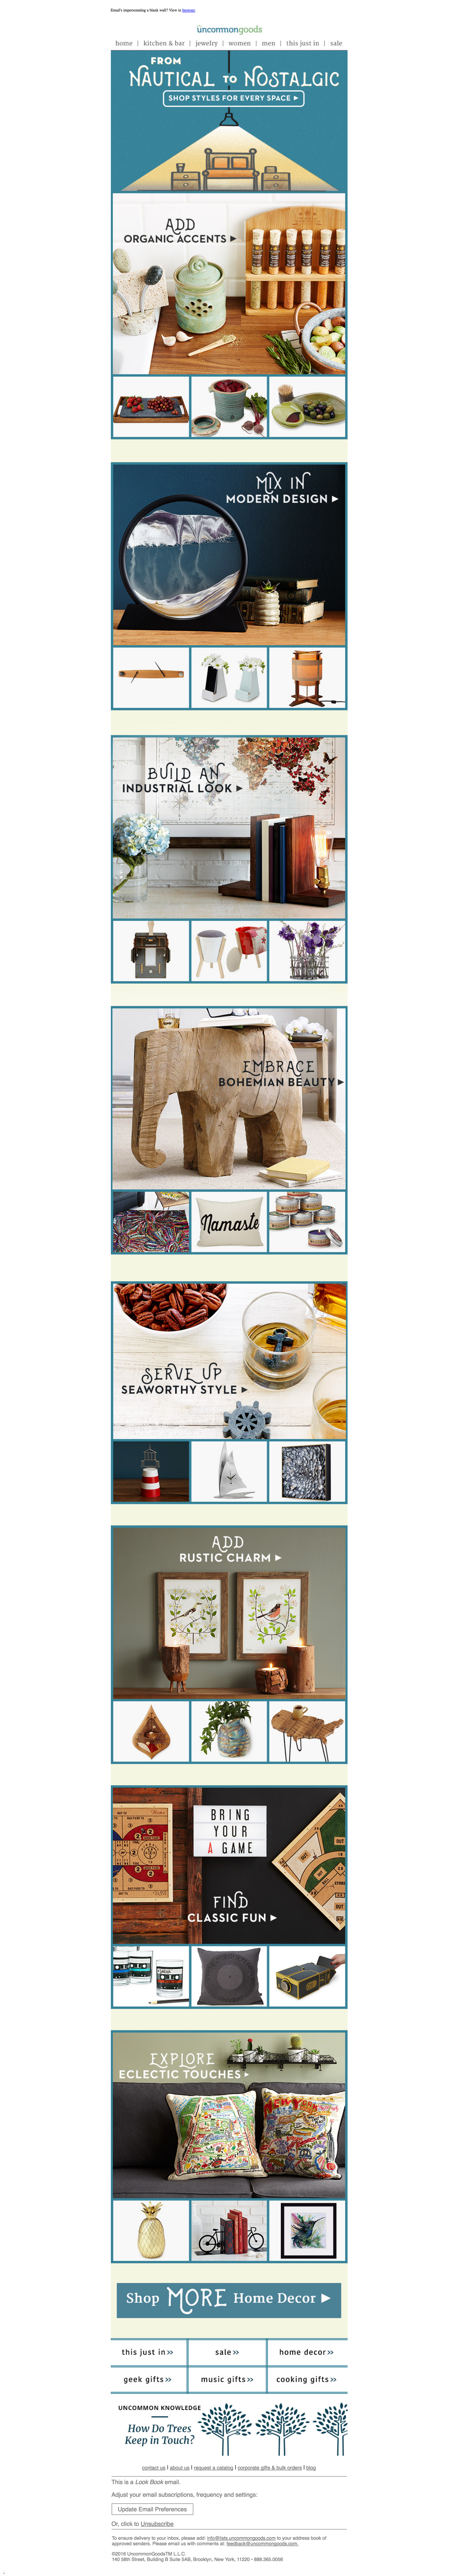 Uncommon_Goods_Email-1.png